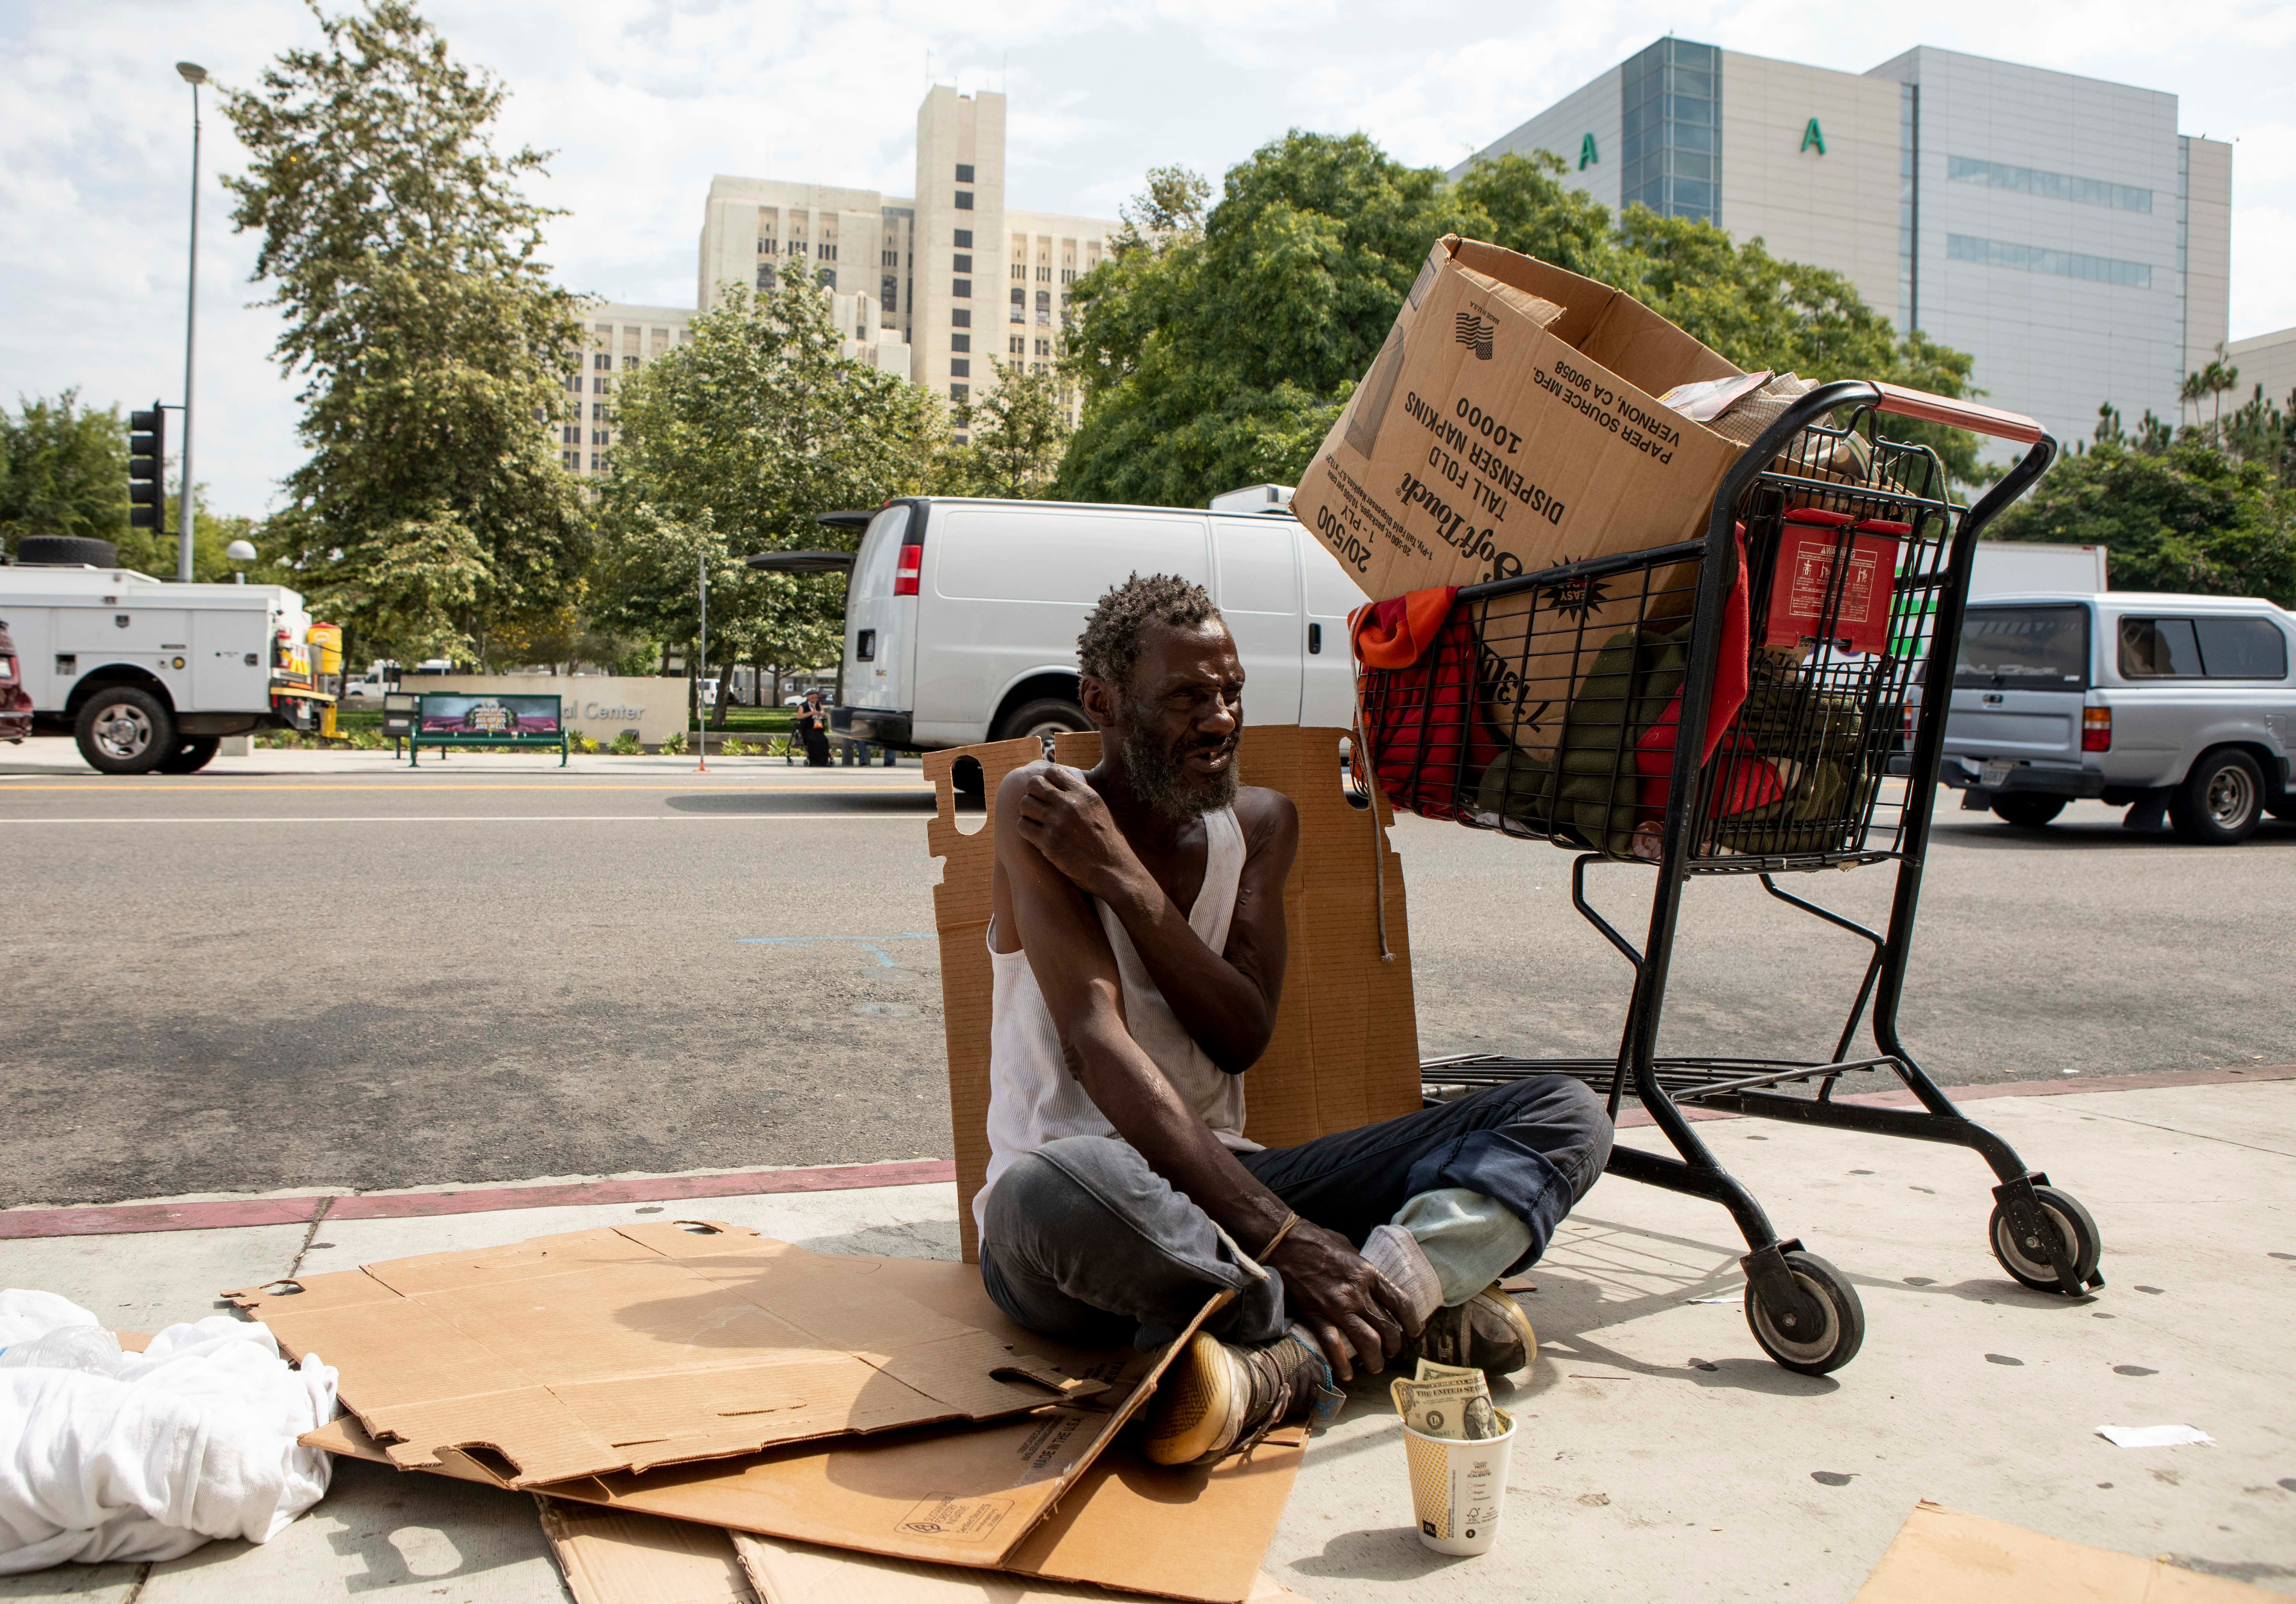 Will, who provided his first name only, sits on the sidewalk in Los Angeles. Will has been homeless since he arrived in Los Angeles in 1982. Photo by Anne Wernikoff for CalMatters